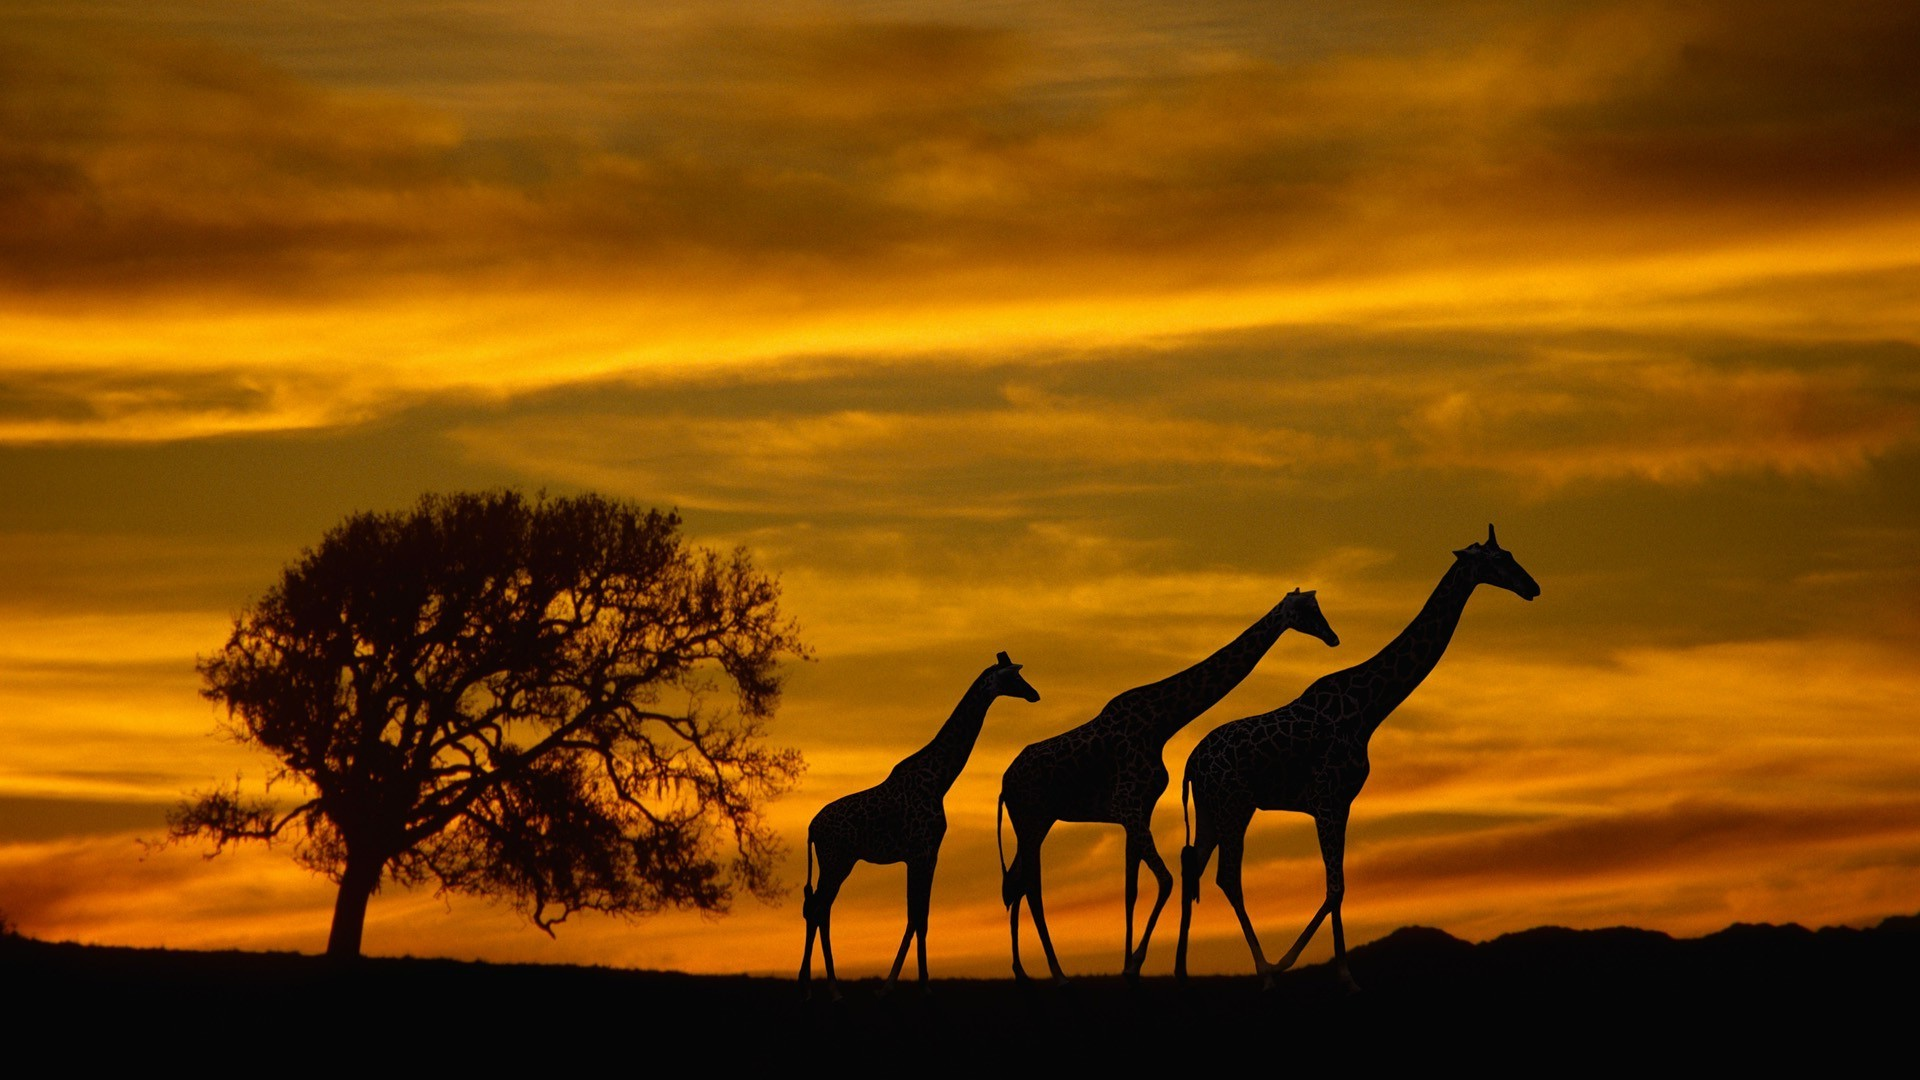 Wildlife desktop backgrounds wallpapertag - Best animal wallpaper download ...